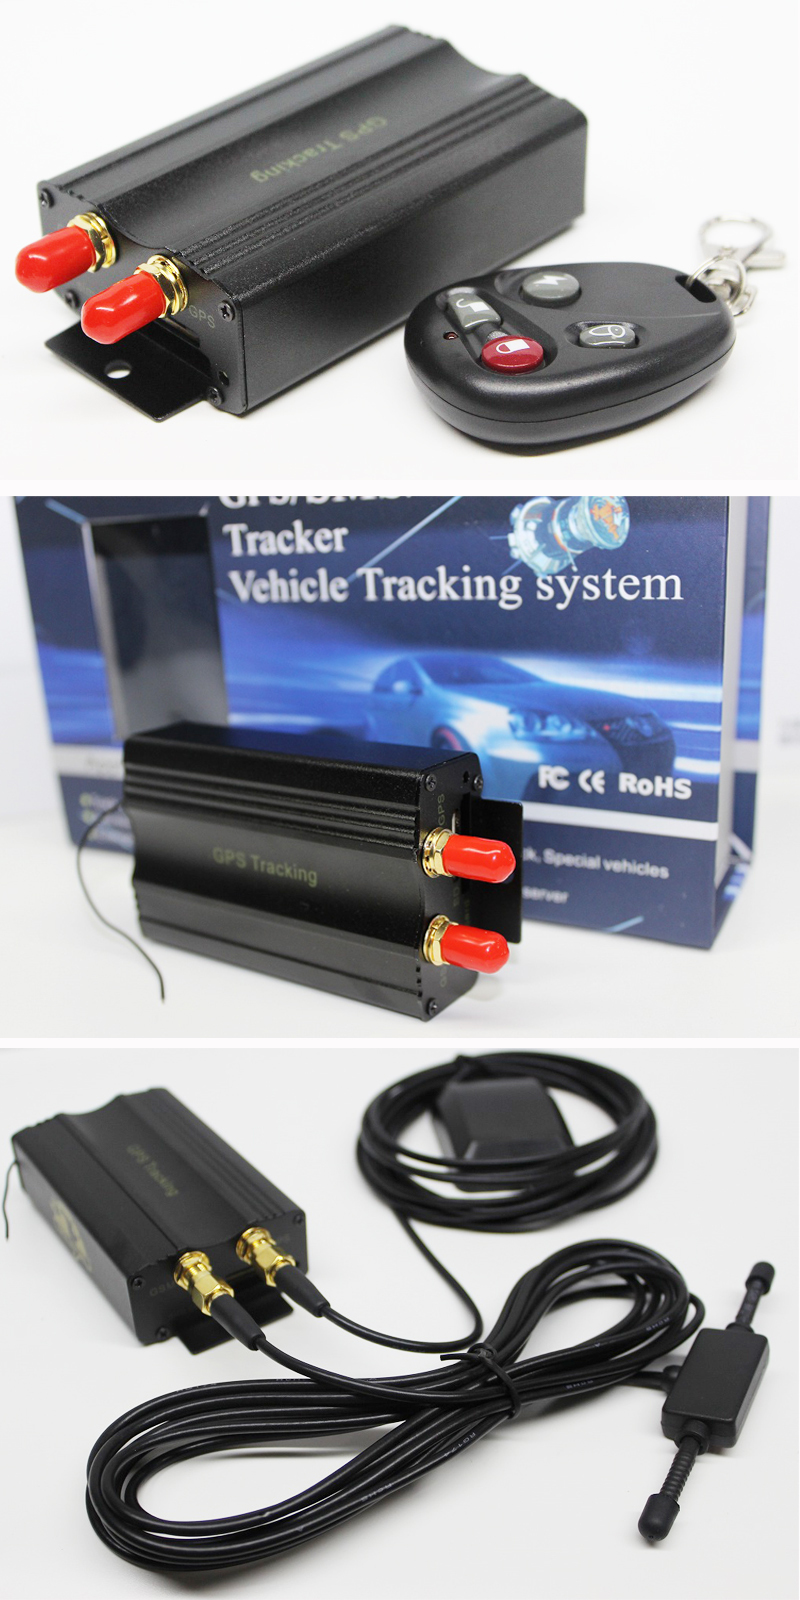 Tracking Devices For Cars Best Buy >> Best prcie gps tracking devices for machine /vehicle /car free gps car tracker GPS TK103B